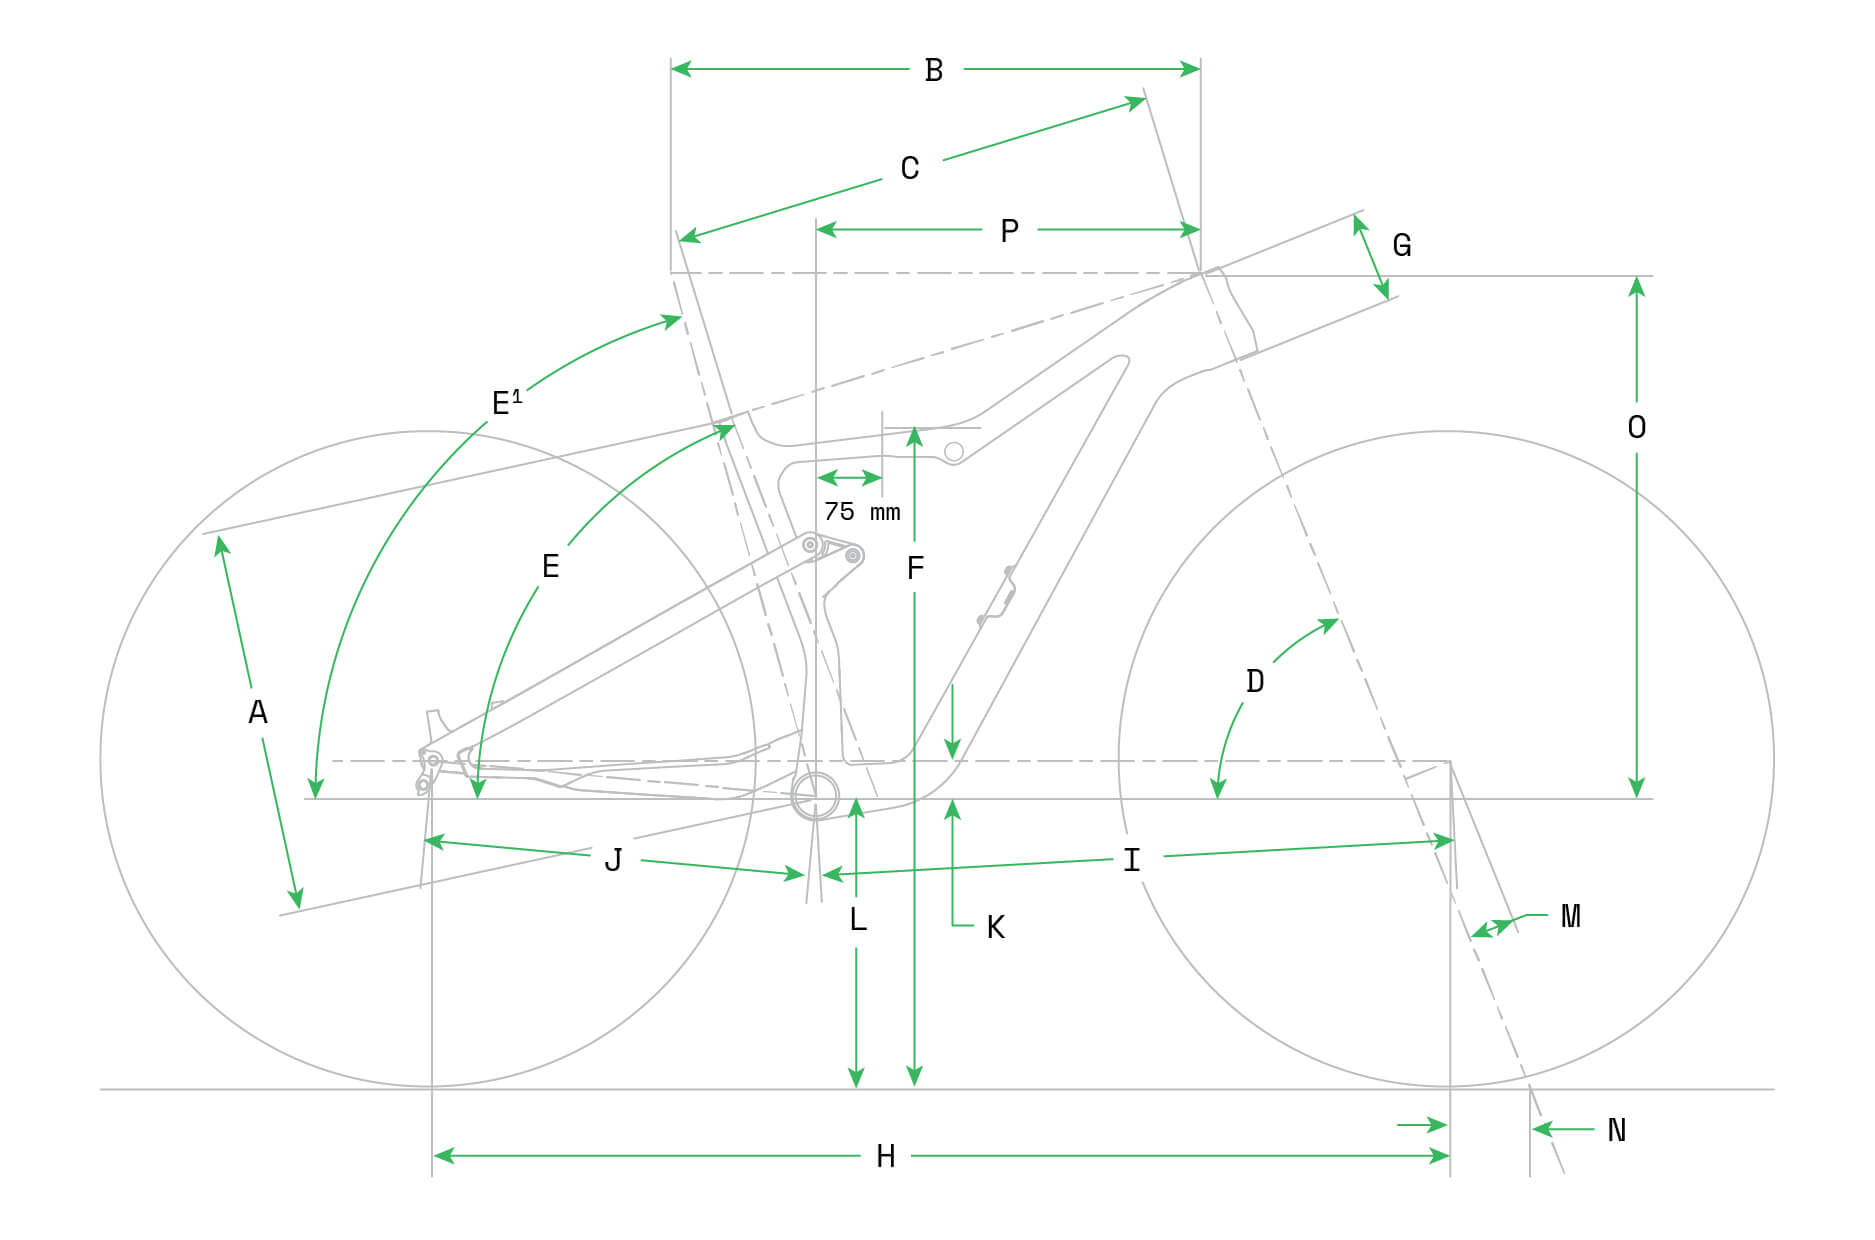 Cannondale Scalpel SE Geometry Image